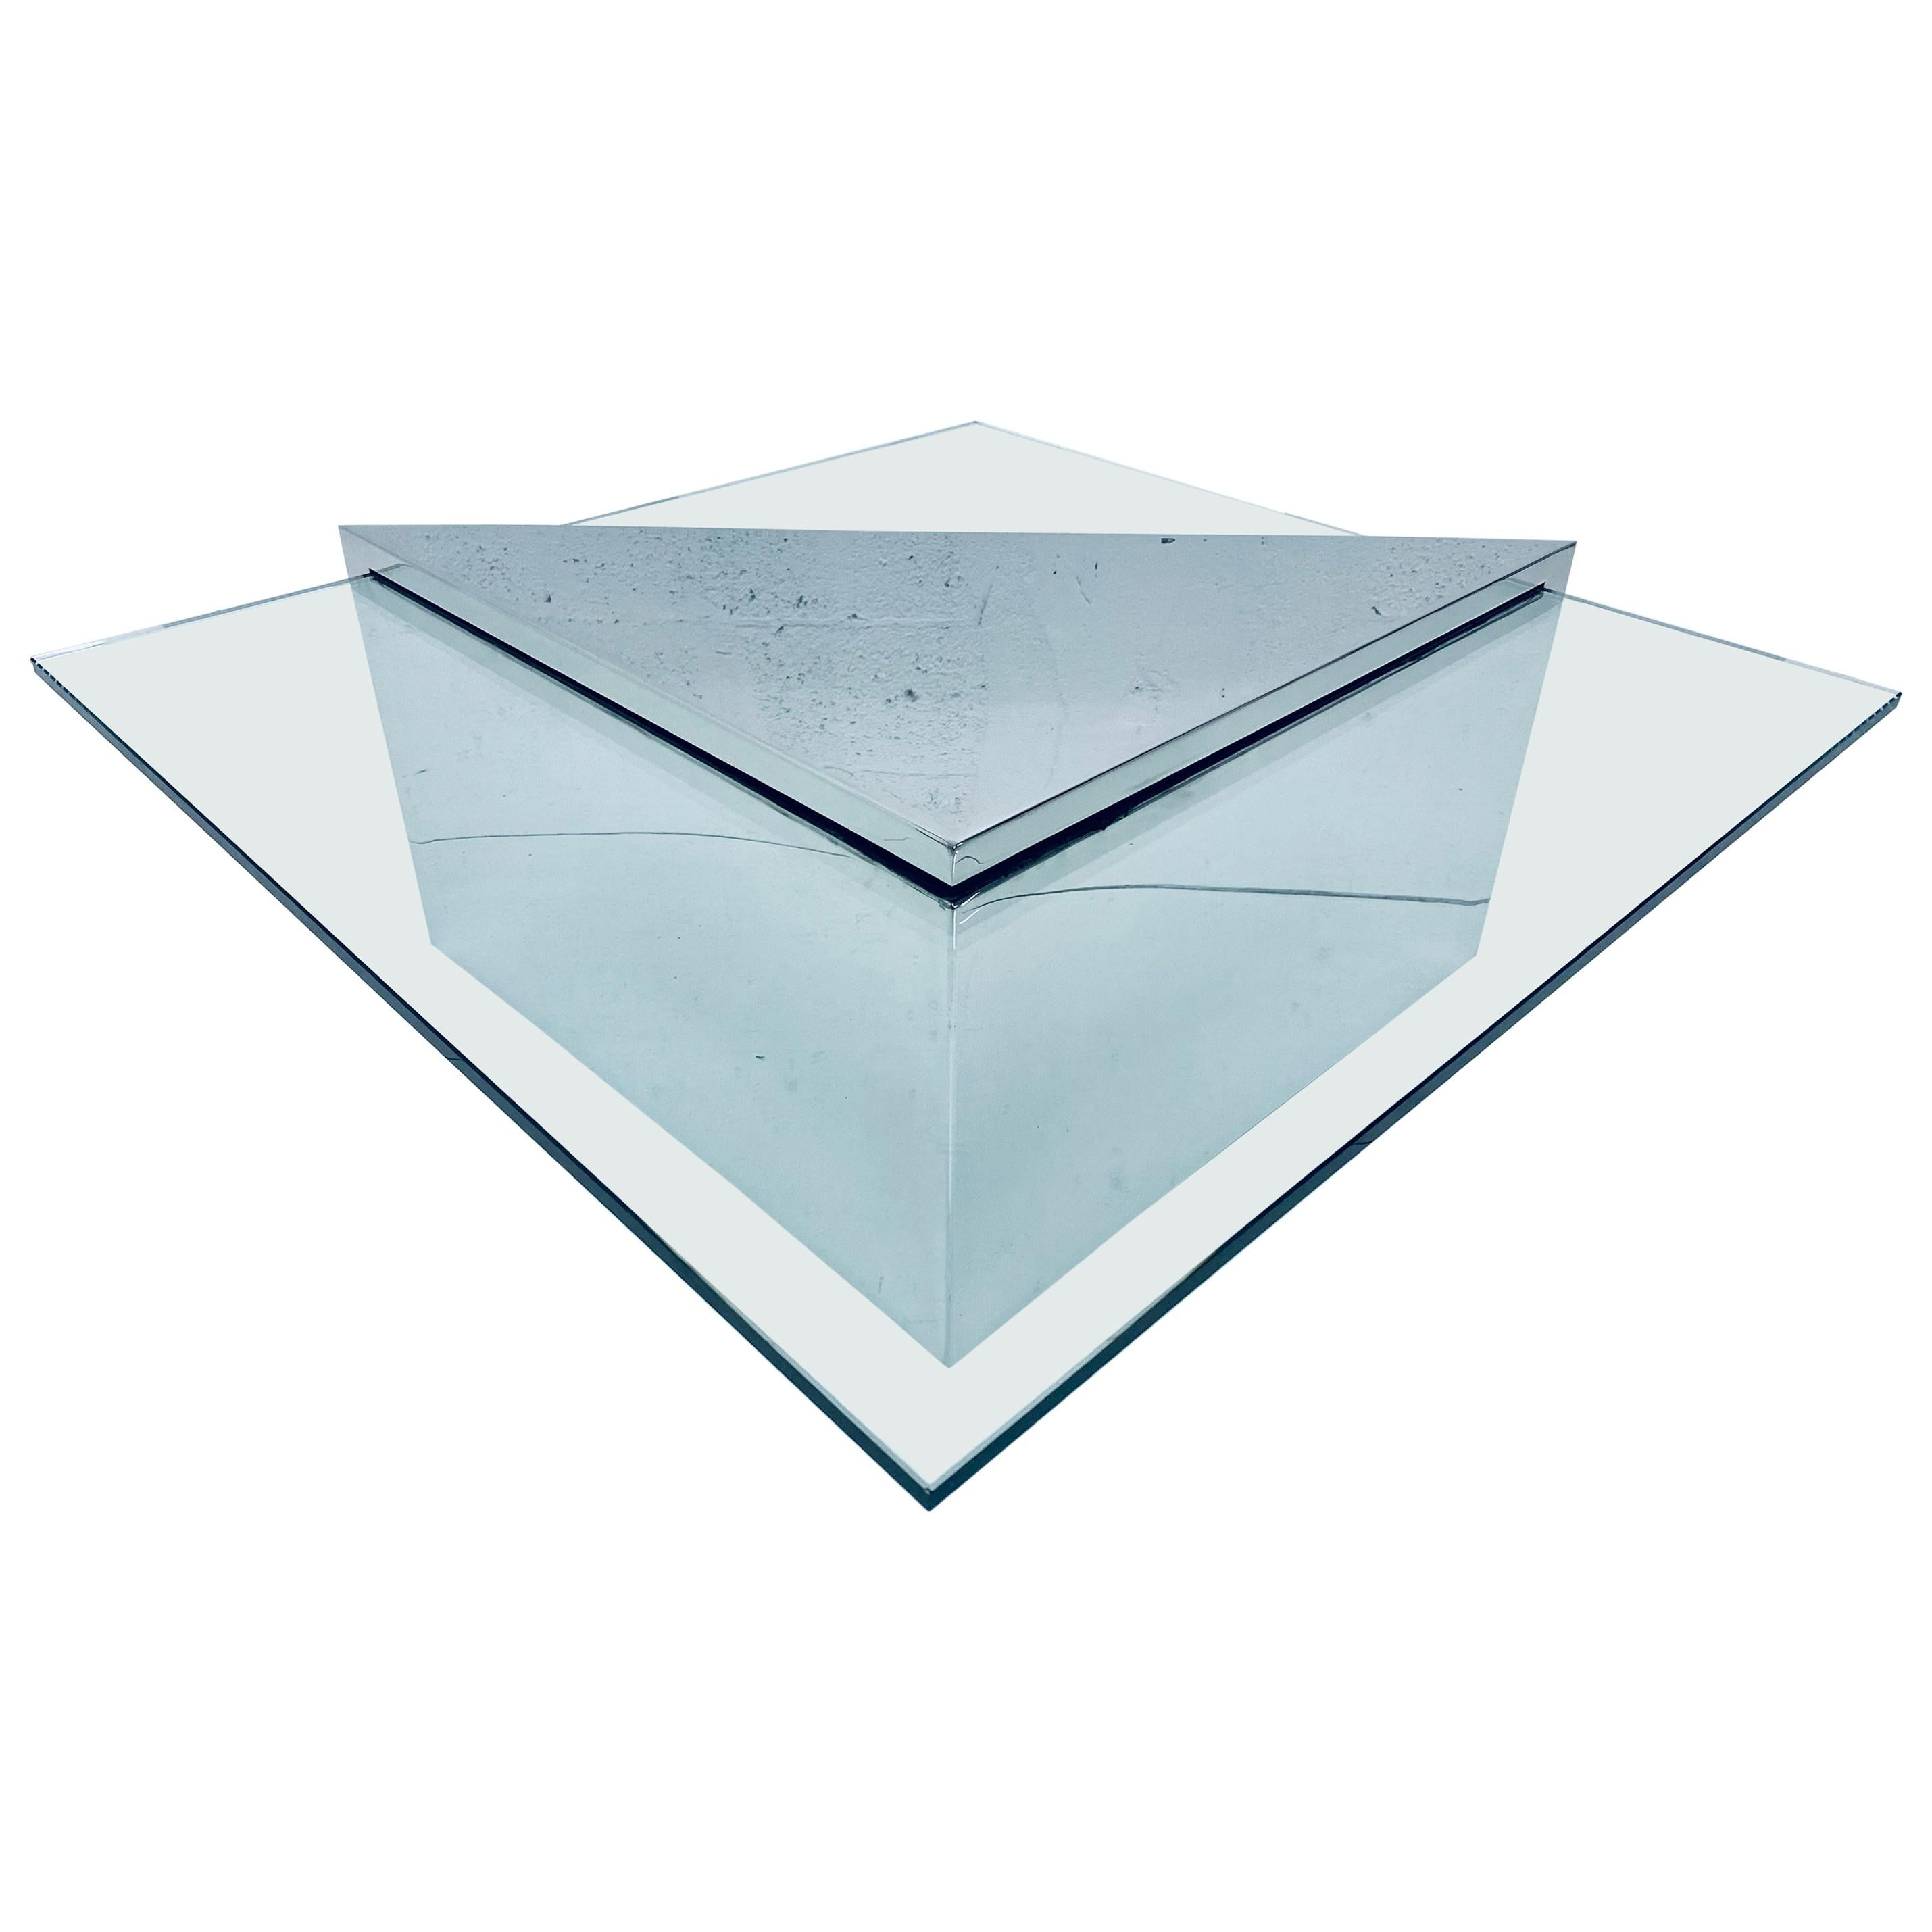 J. Wade Beam Polished Steel and Cantilevered Glass Coffee Table for Brueton